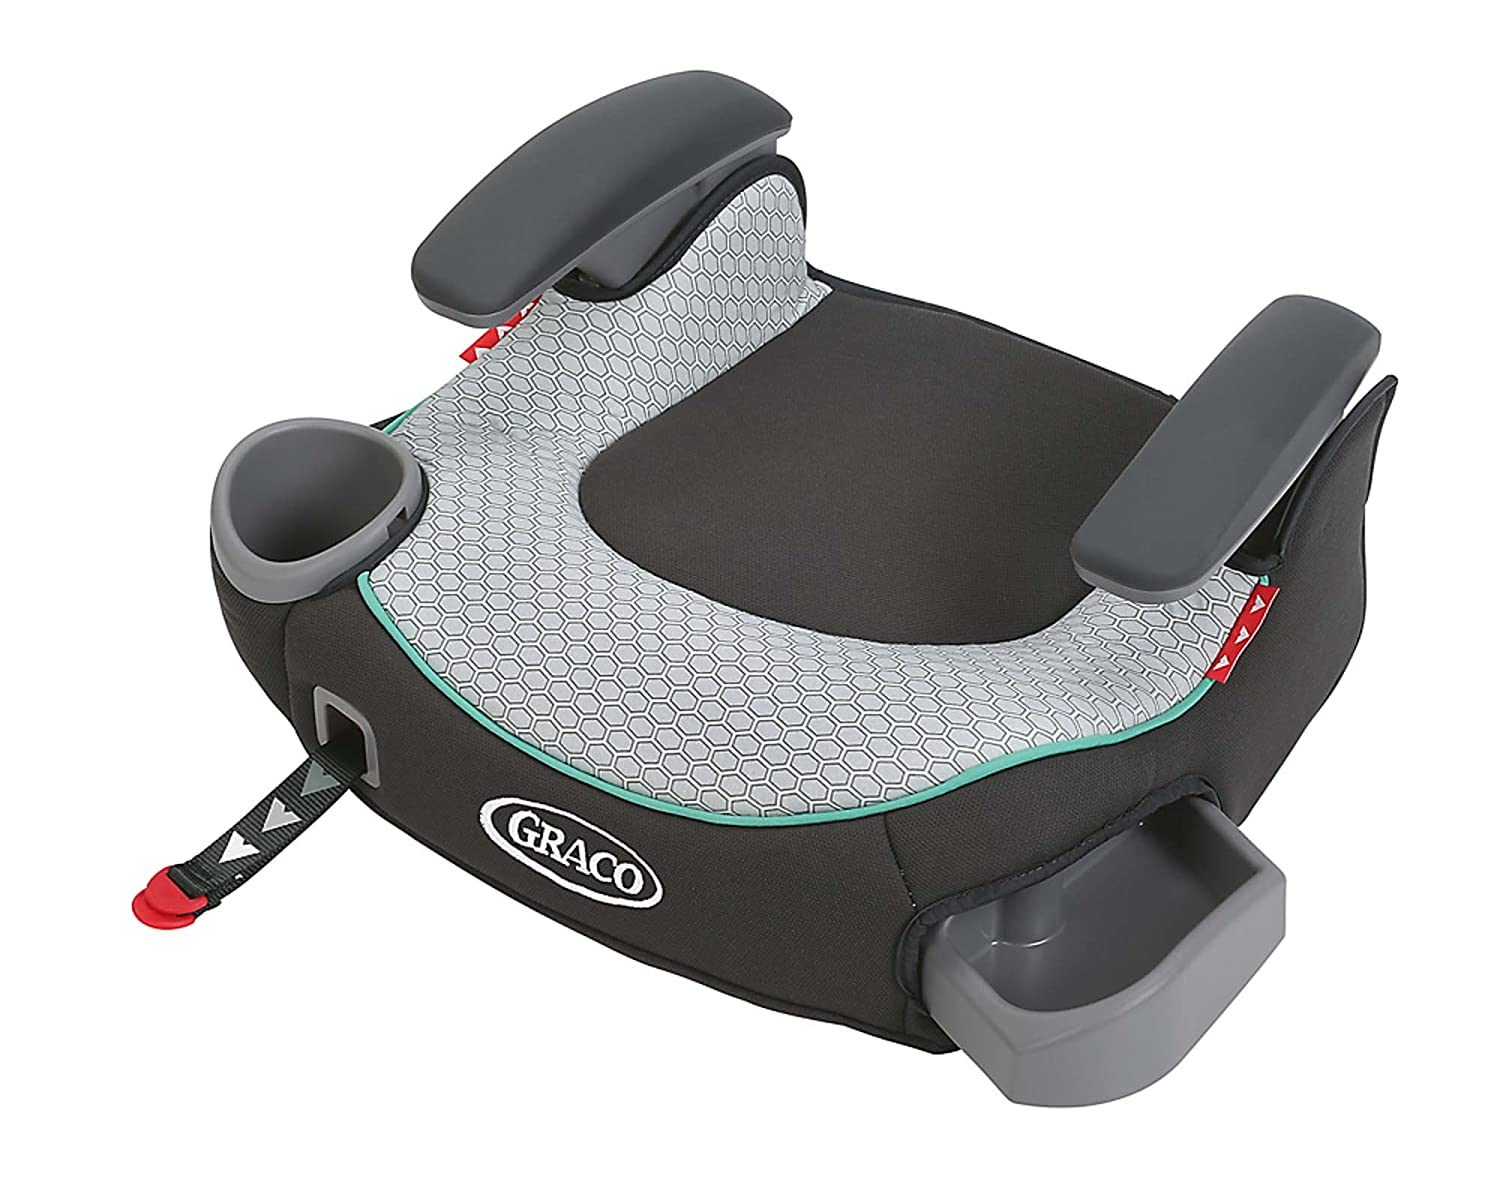 71kKMpeVM L._SL1500_ amazon com toddler car seats baby products  at gsmx.co